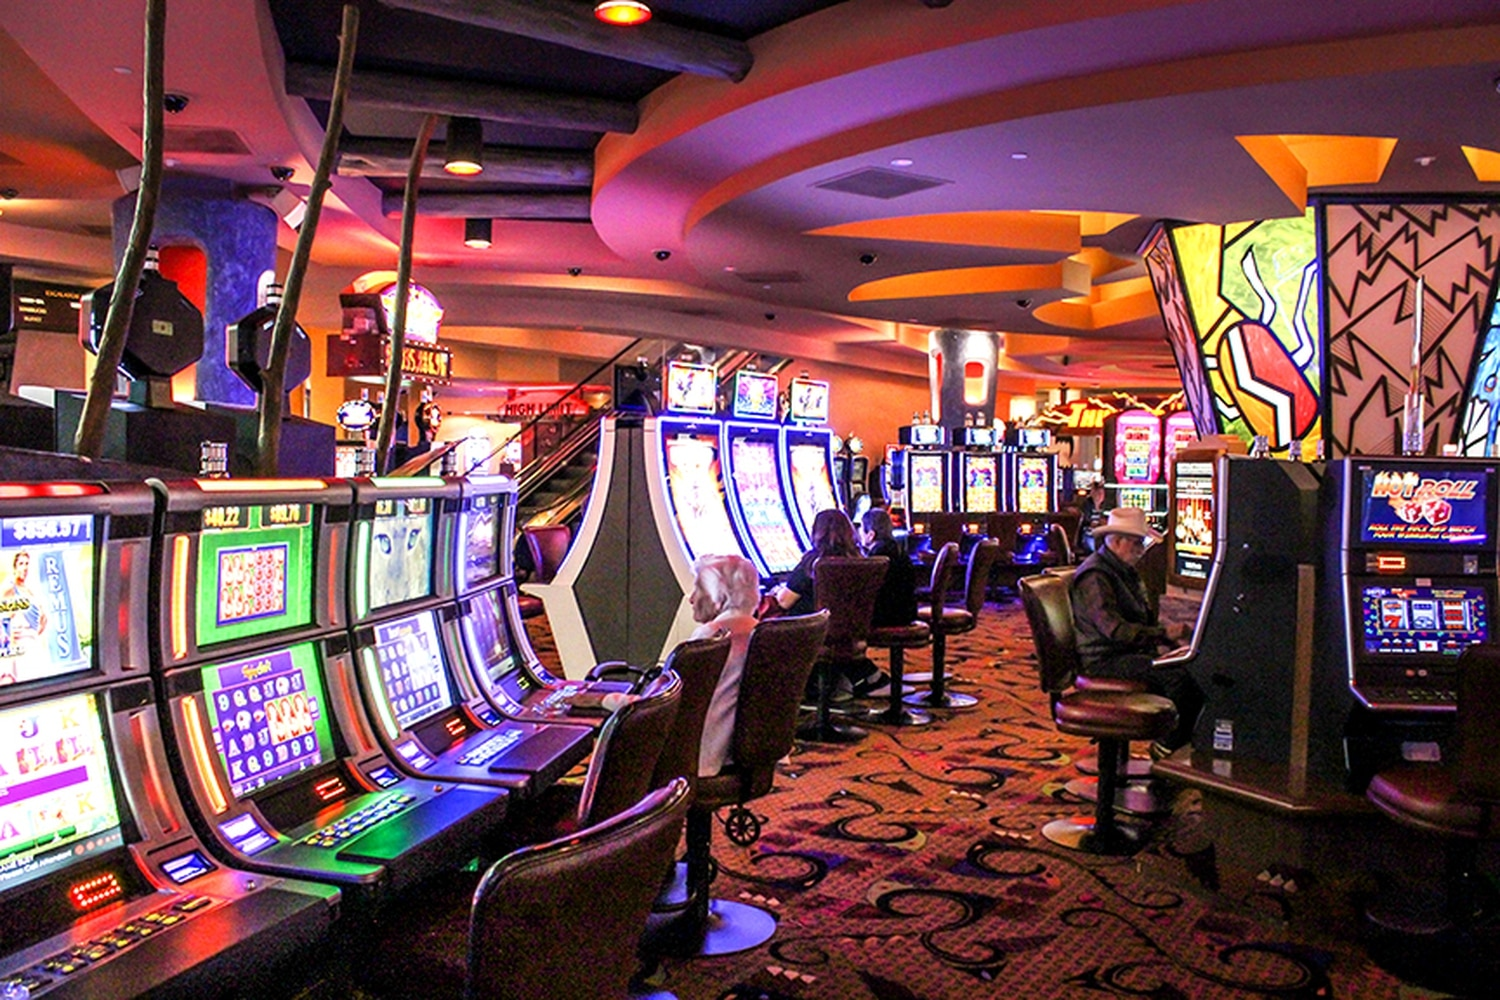 Gamblers test their luck at the slot machines at Buffalo Thunder, one of Pojoaque's two casinos.